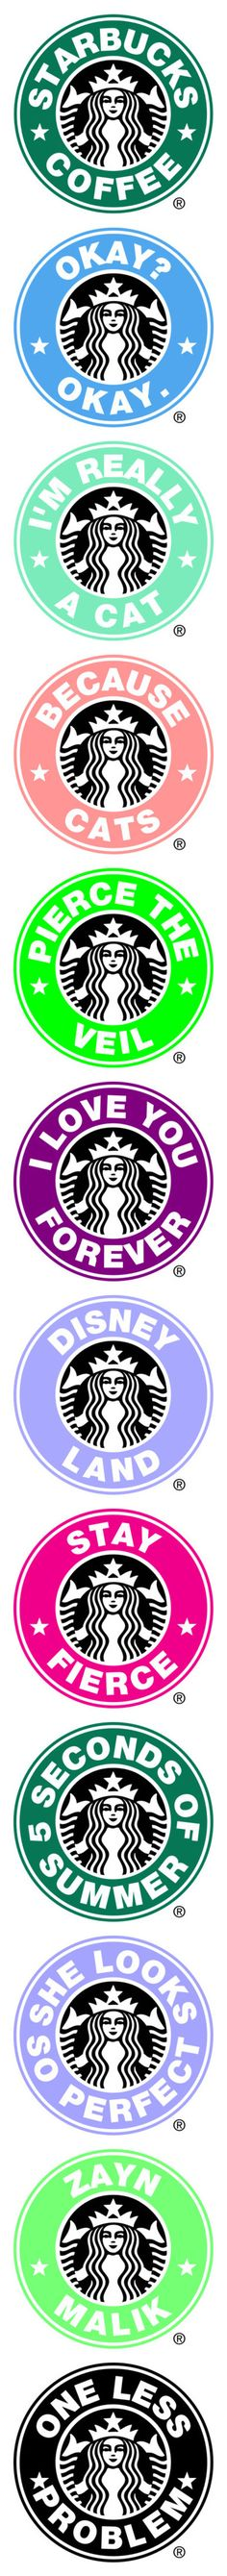 """""""Starbucks logo's"""" by desyrae-carstensen ❤ liked on Polyvore featuring fillers, words, green fillers, logo's, pictures, starbucks logos, backgrounds, other, starbucks and bands"""